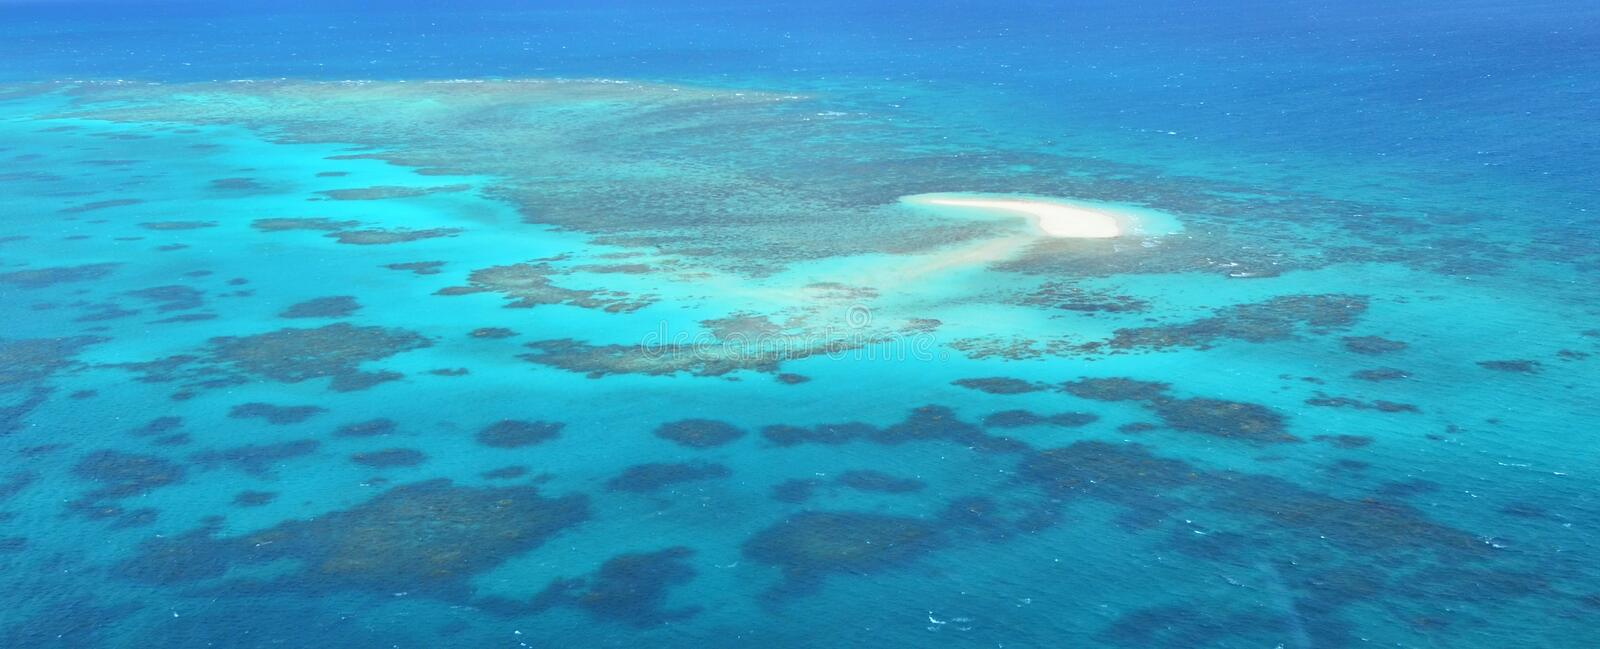 Aerial view of Oystaer coral reef at the Great Barrier Reef Que. Aerial view of Oystaer coral reef at the Great Barrier Reef near Cairns in Tropical North royalty free stock photo